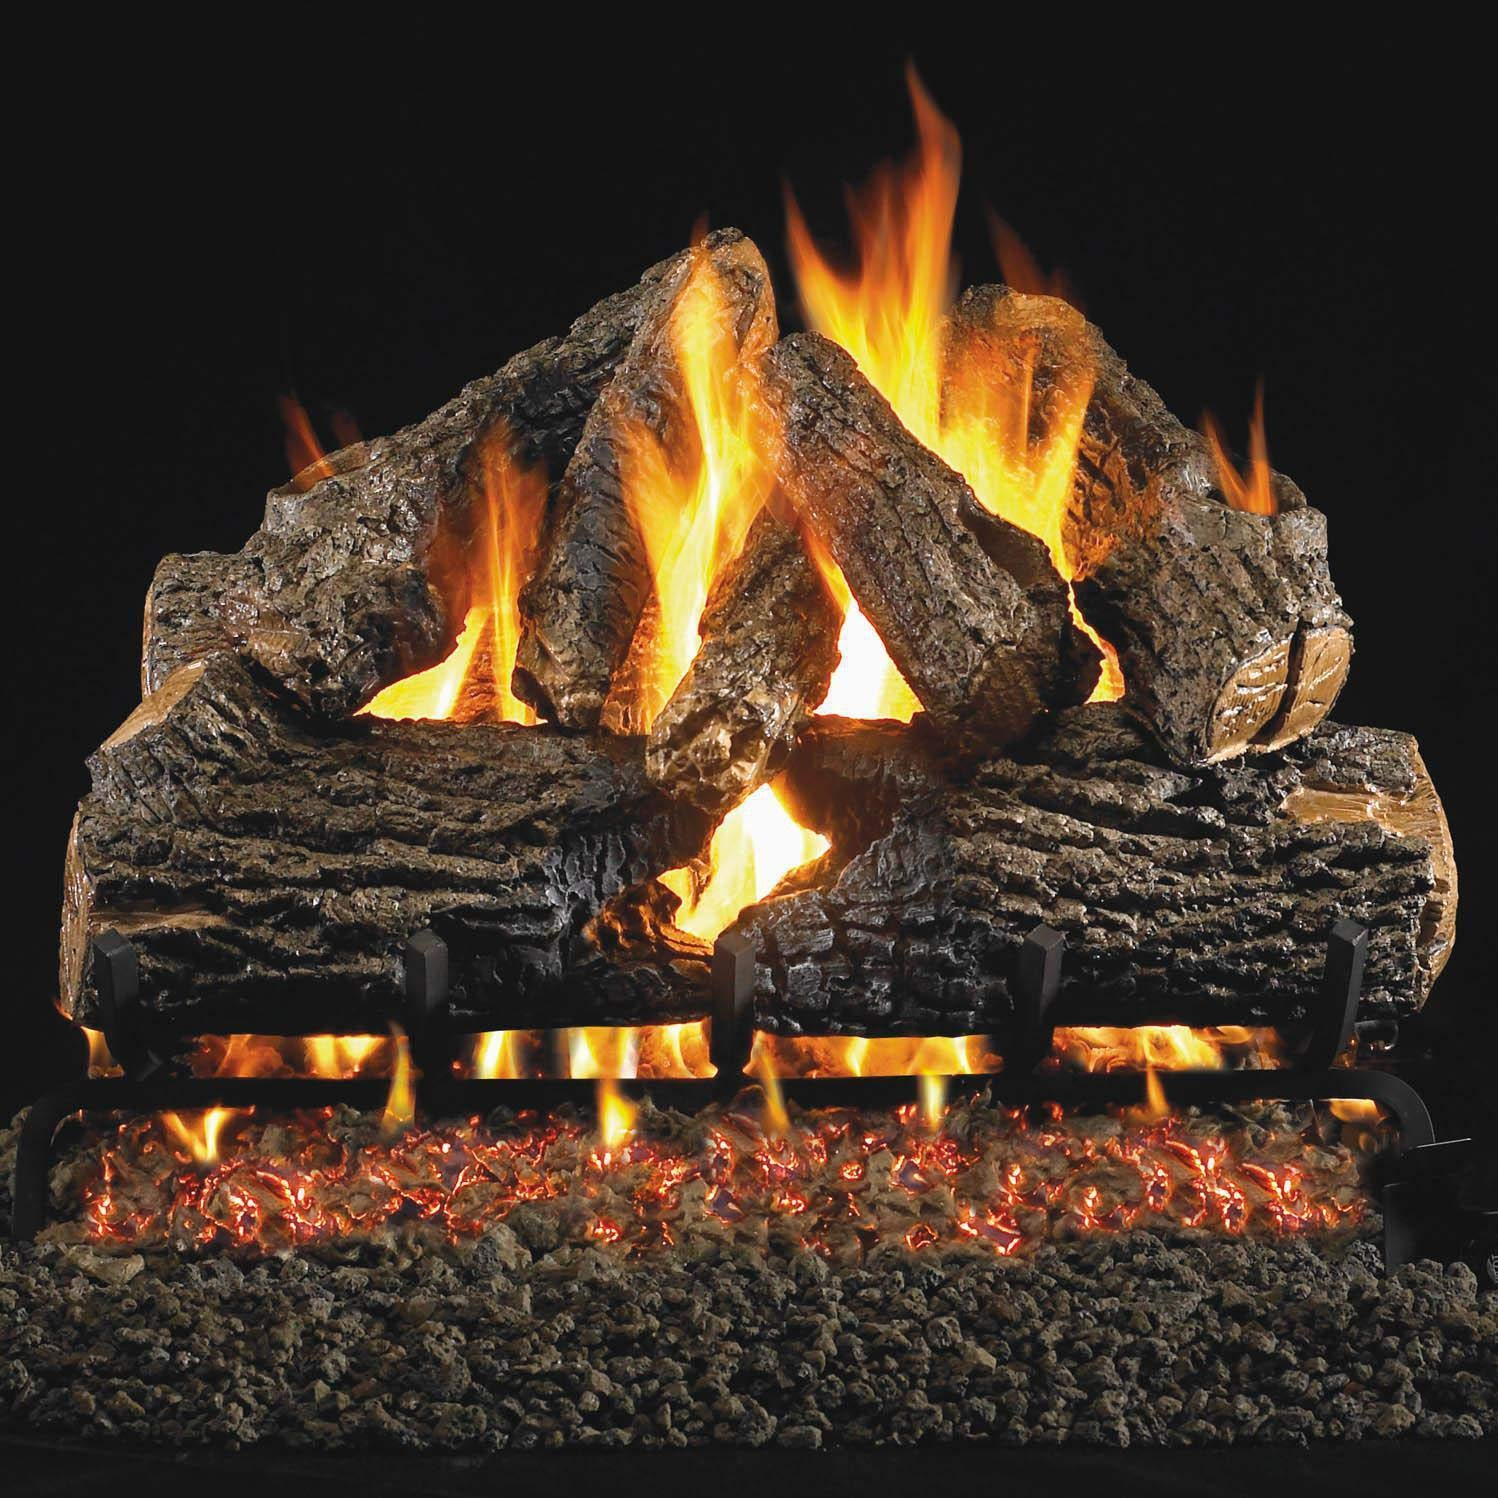 Peterson Real Fyre 24-inch Charred Oak Gas Log Set With Vented Natural Gas G45 Burner - Manual Safety Pilot by Peterson Real Fyre